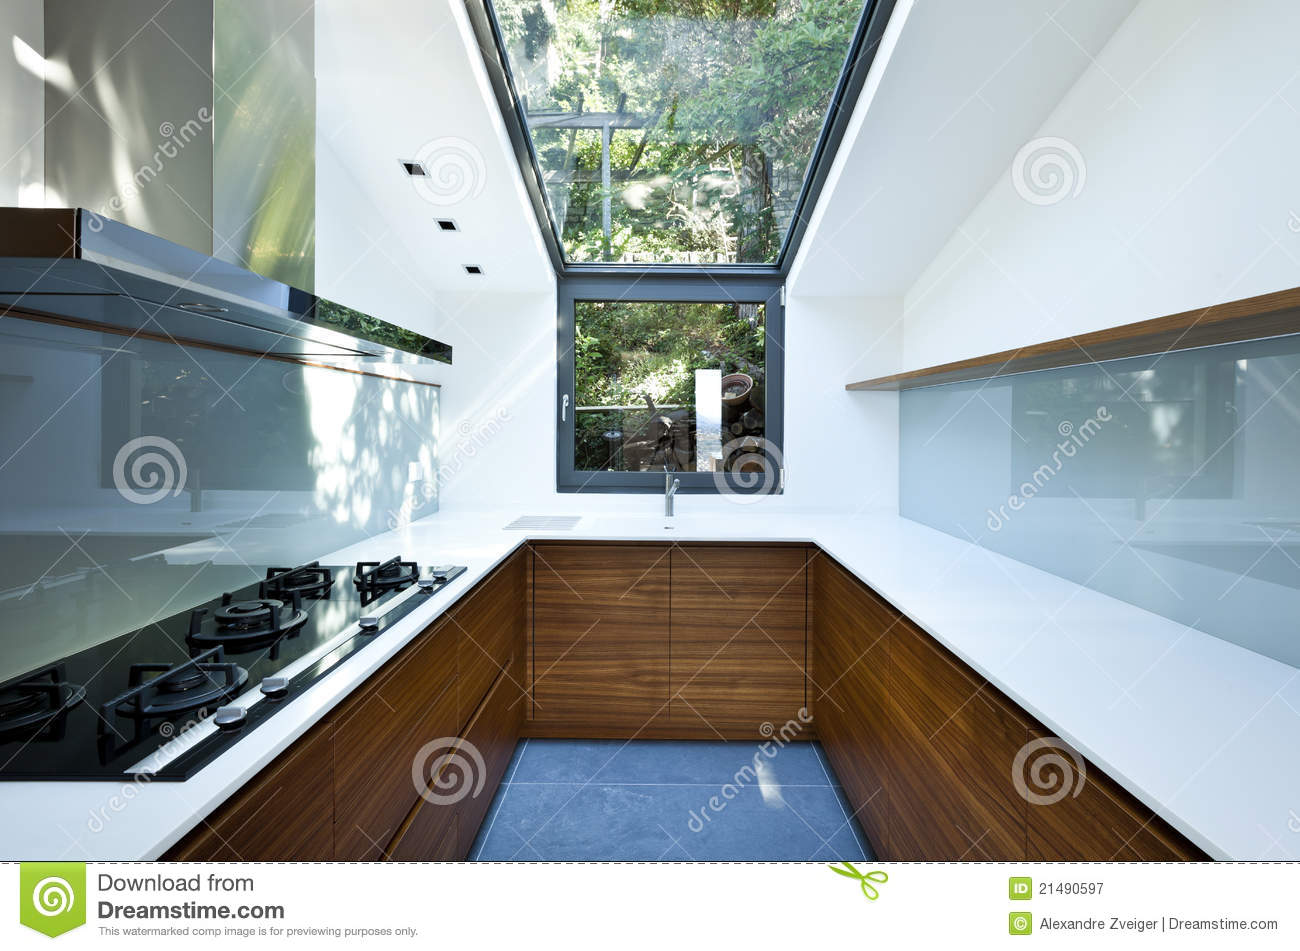 Garage Apartment Floor Plans Kitchen With Panoramic Window Royalty Free Stock